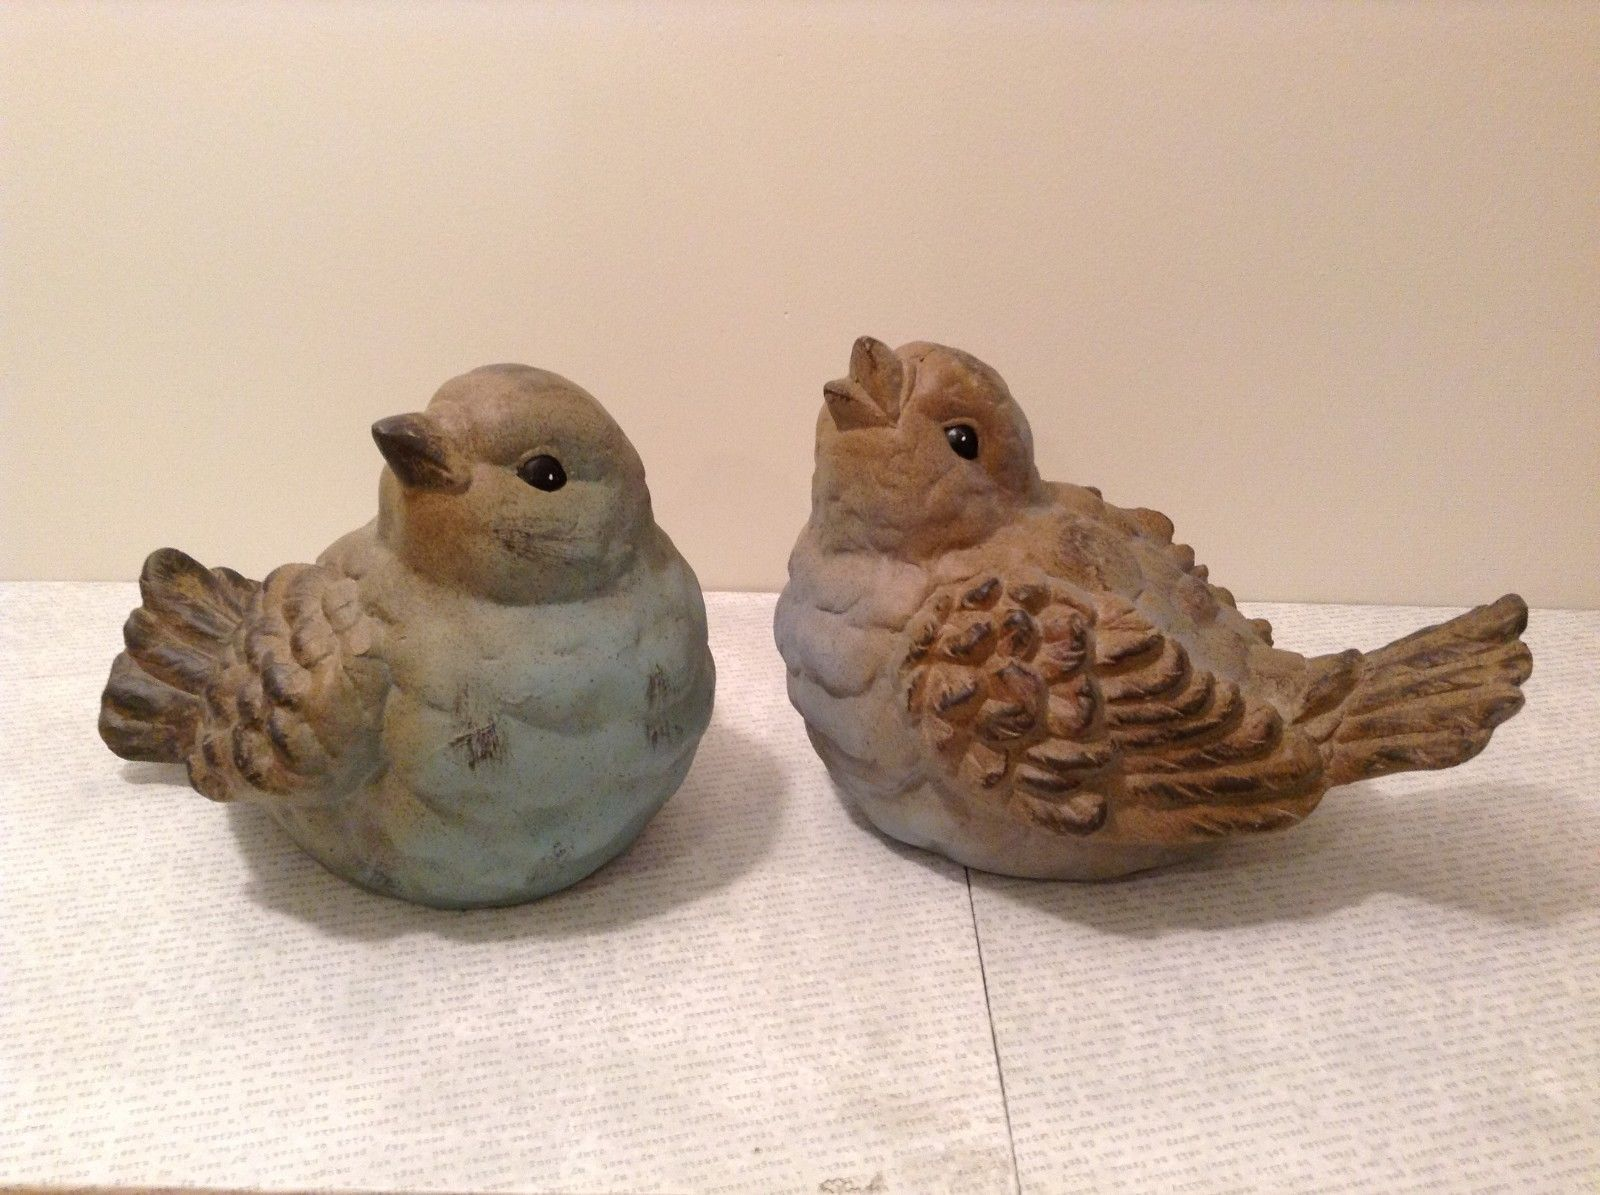 Terra cotta spring summer new baby blue bird duo fluttering their wings